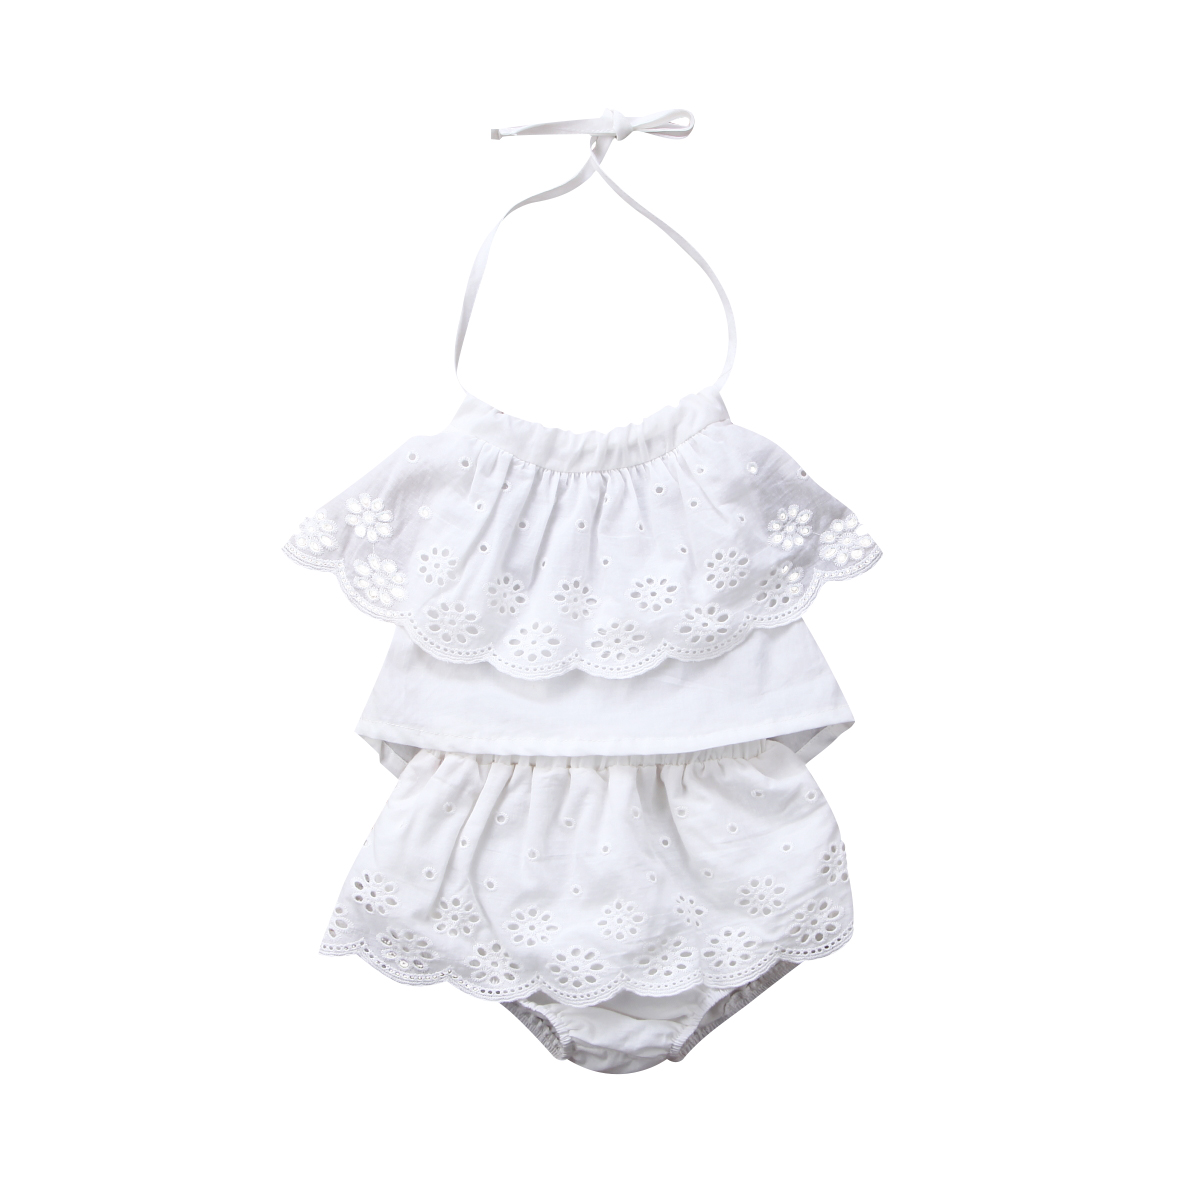 2Pcs set princess baby girls clothes Newborn Baby Girl Lace Top Shorts infant baby girls Outfit Summer cute baby girls clothing